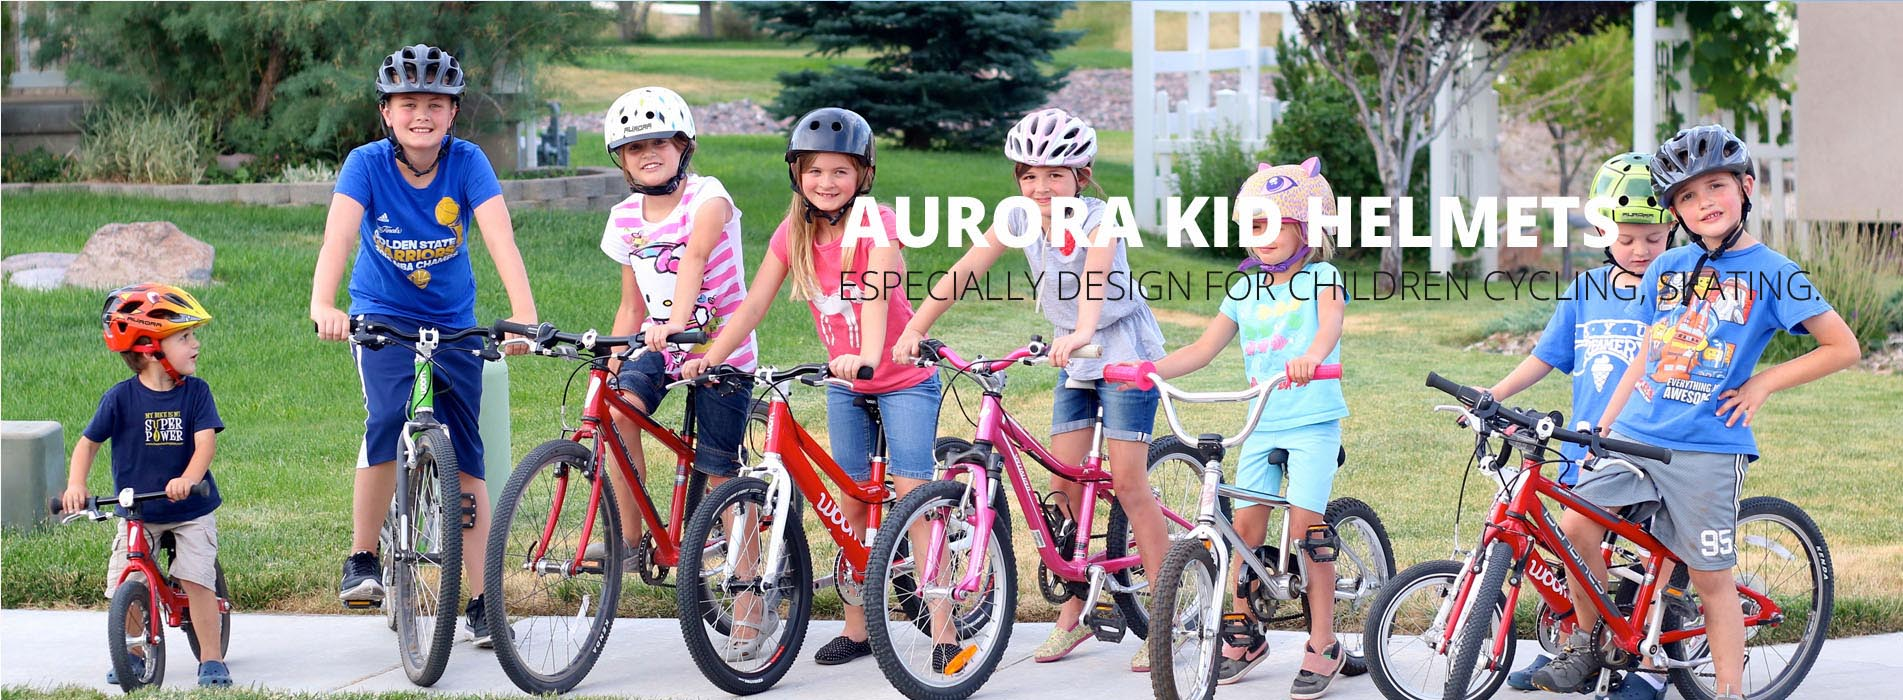 kids bicycle helmet banner